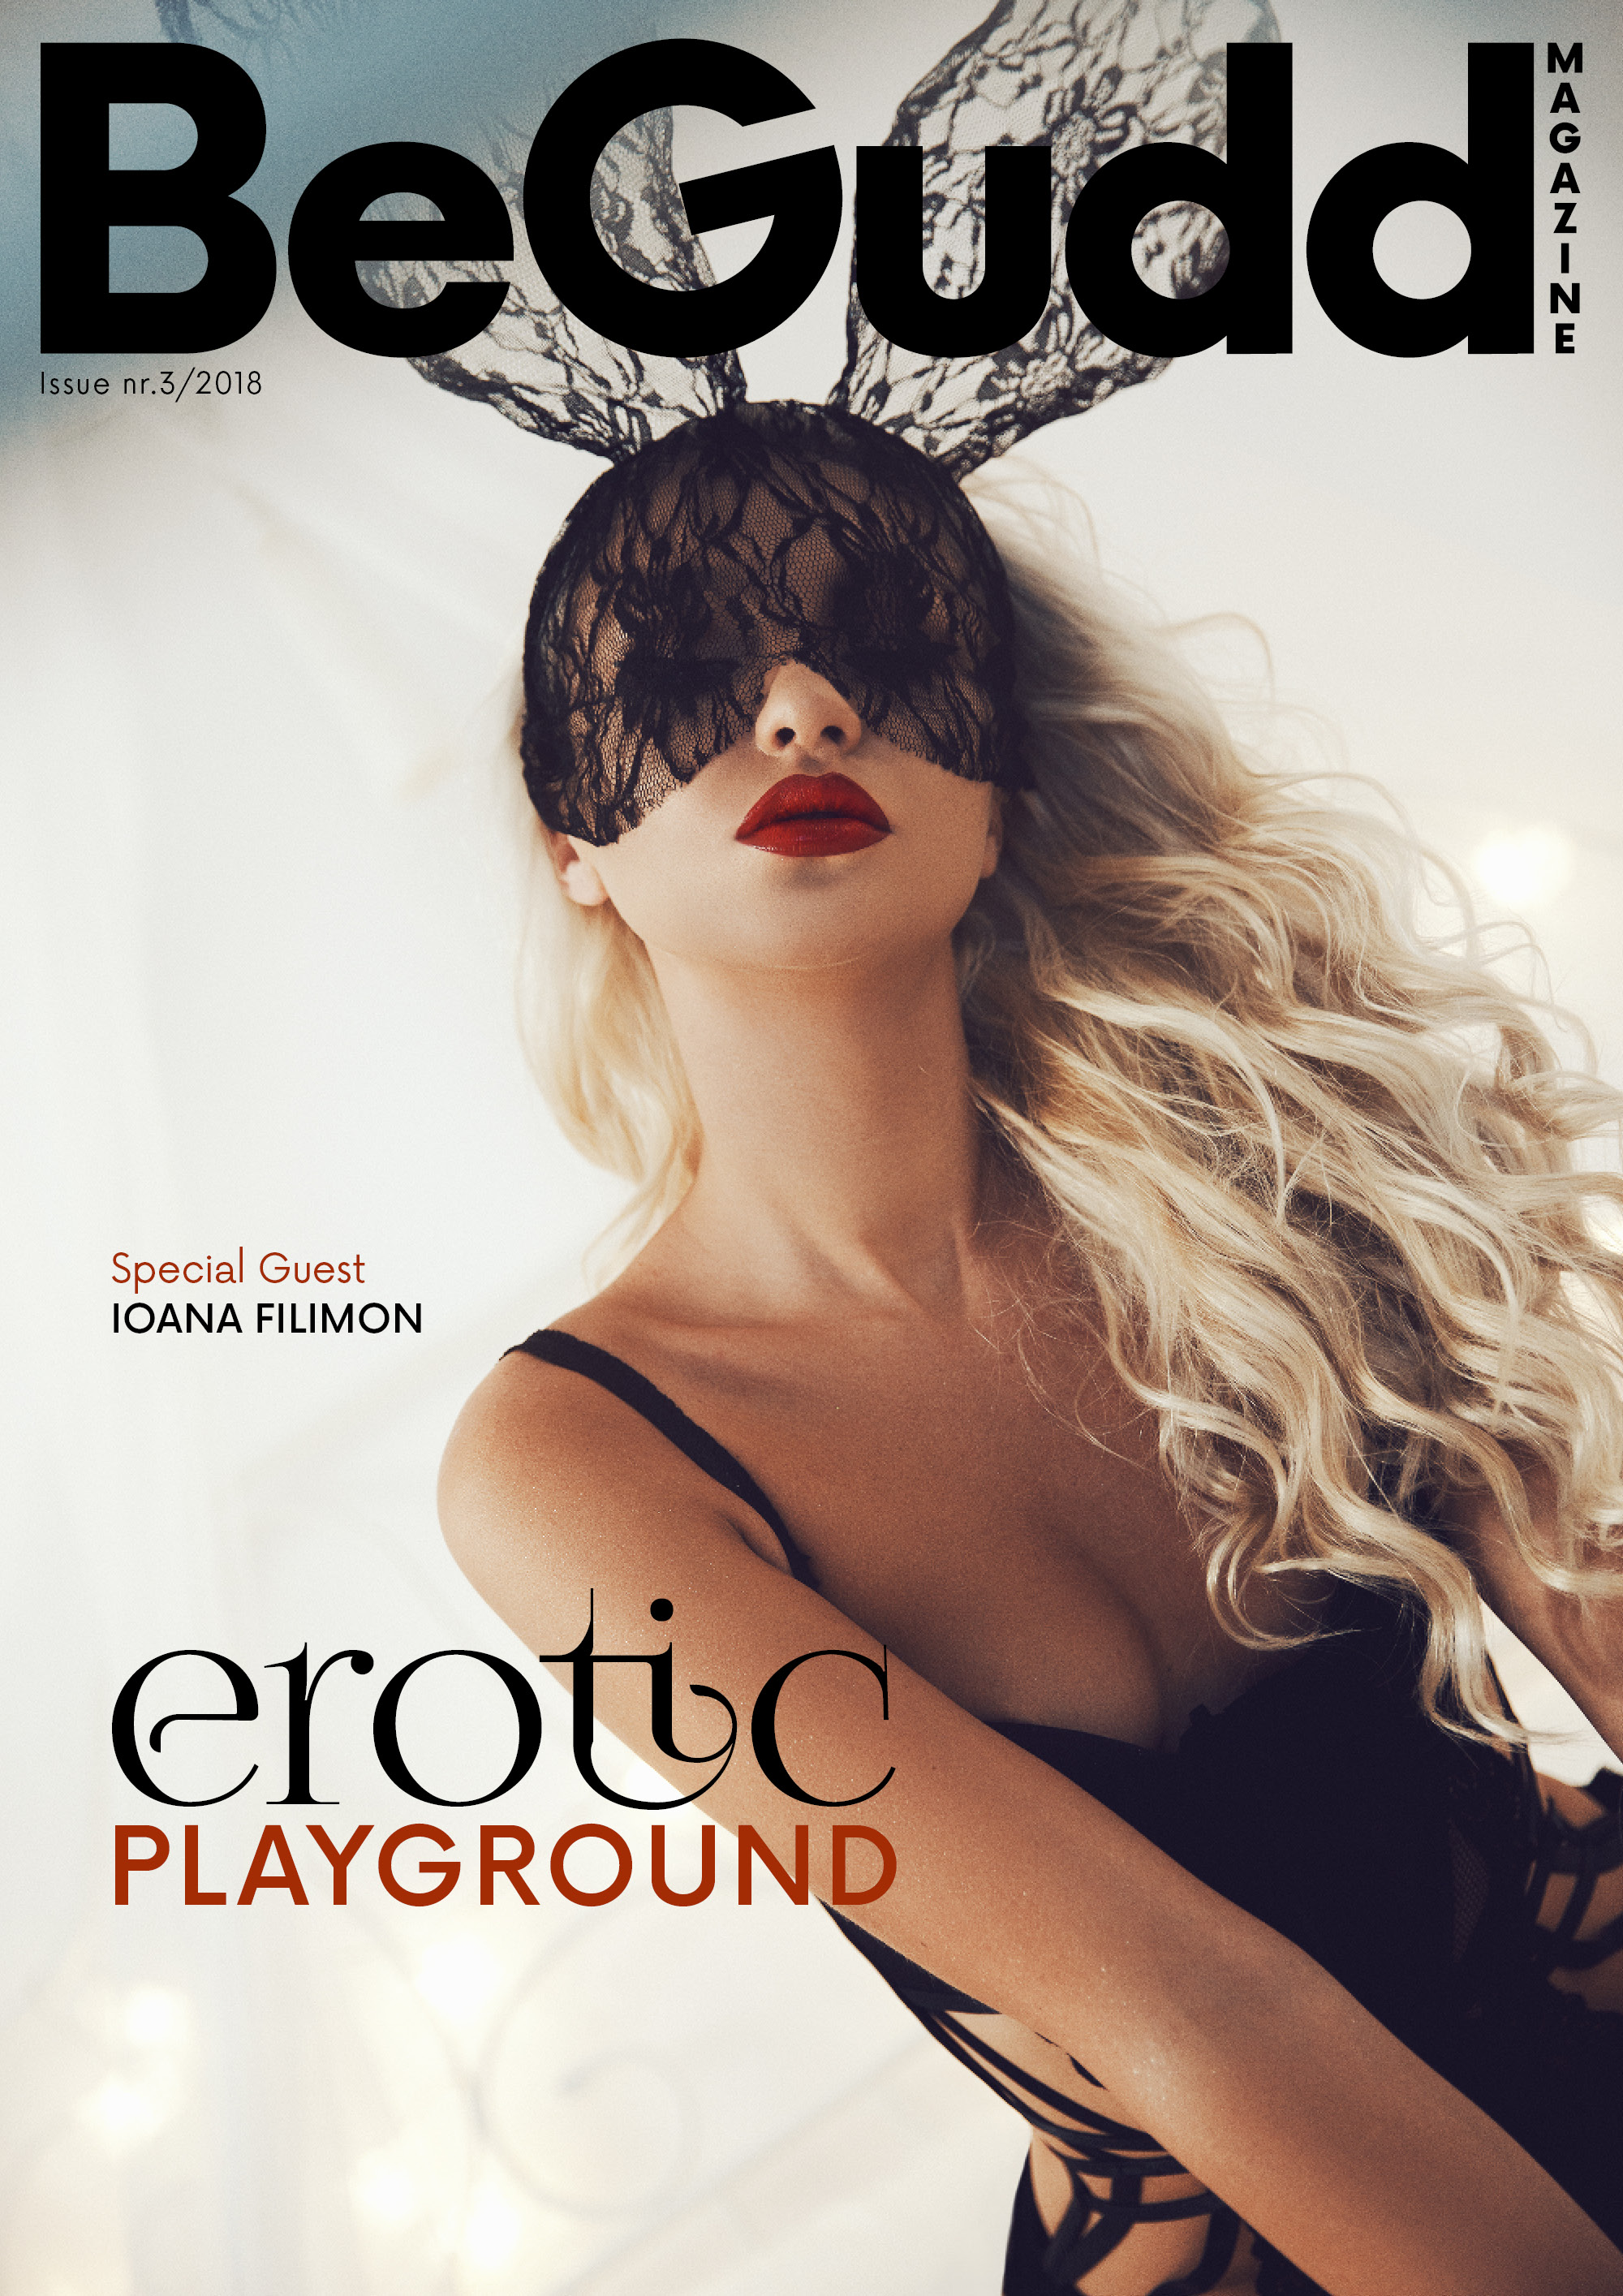 begudd-magazine-cover-fashion-sexy-erotic-black-bunny-erotic-playground-issue